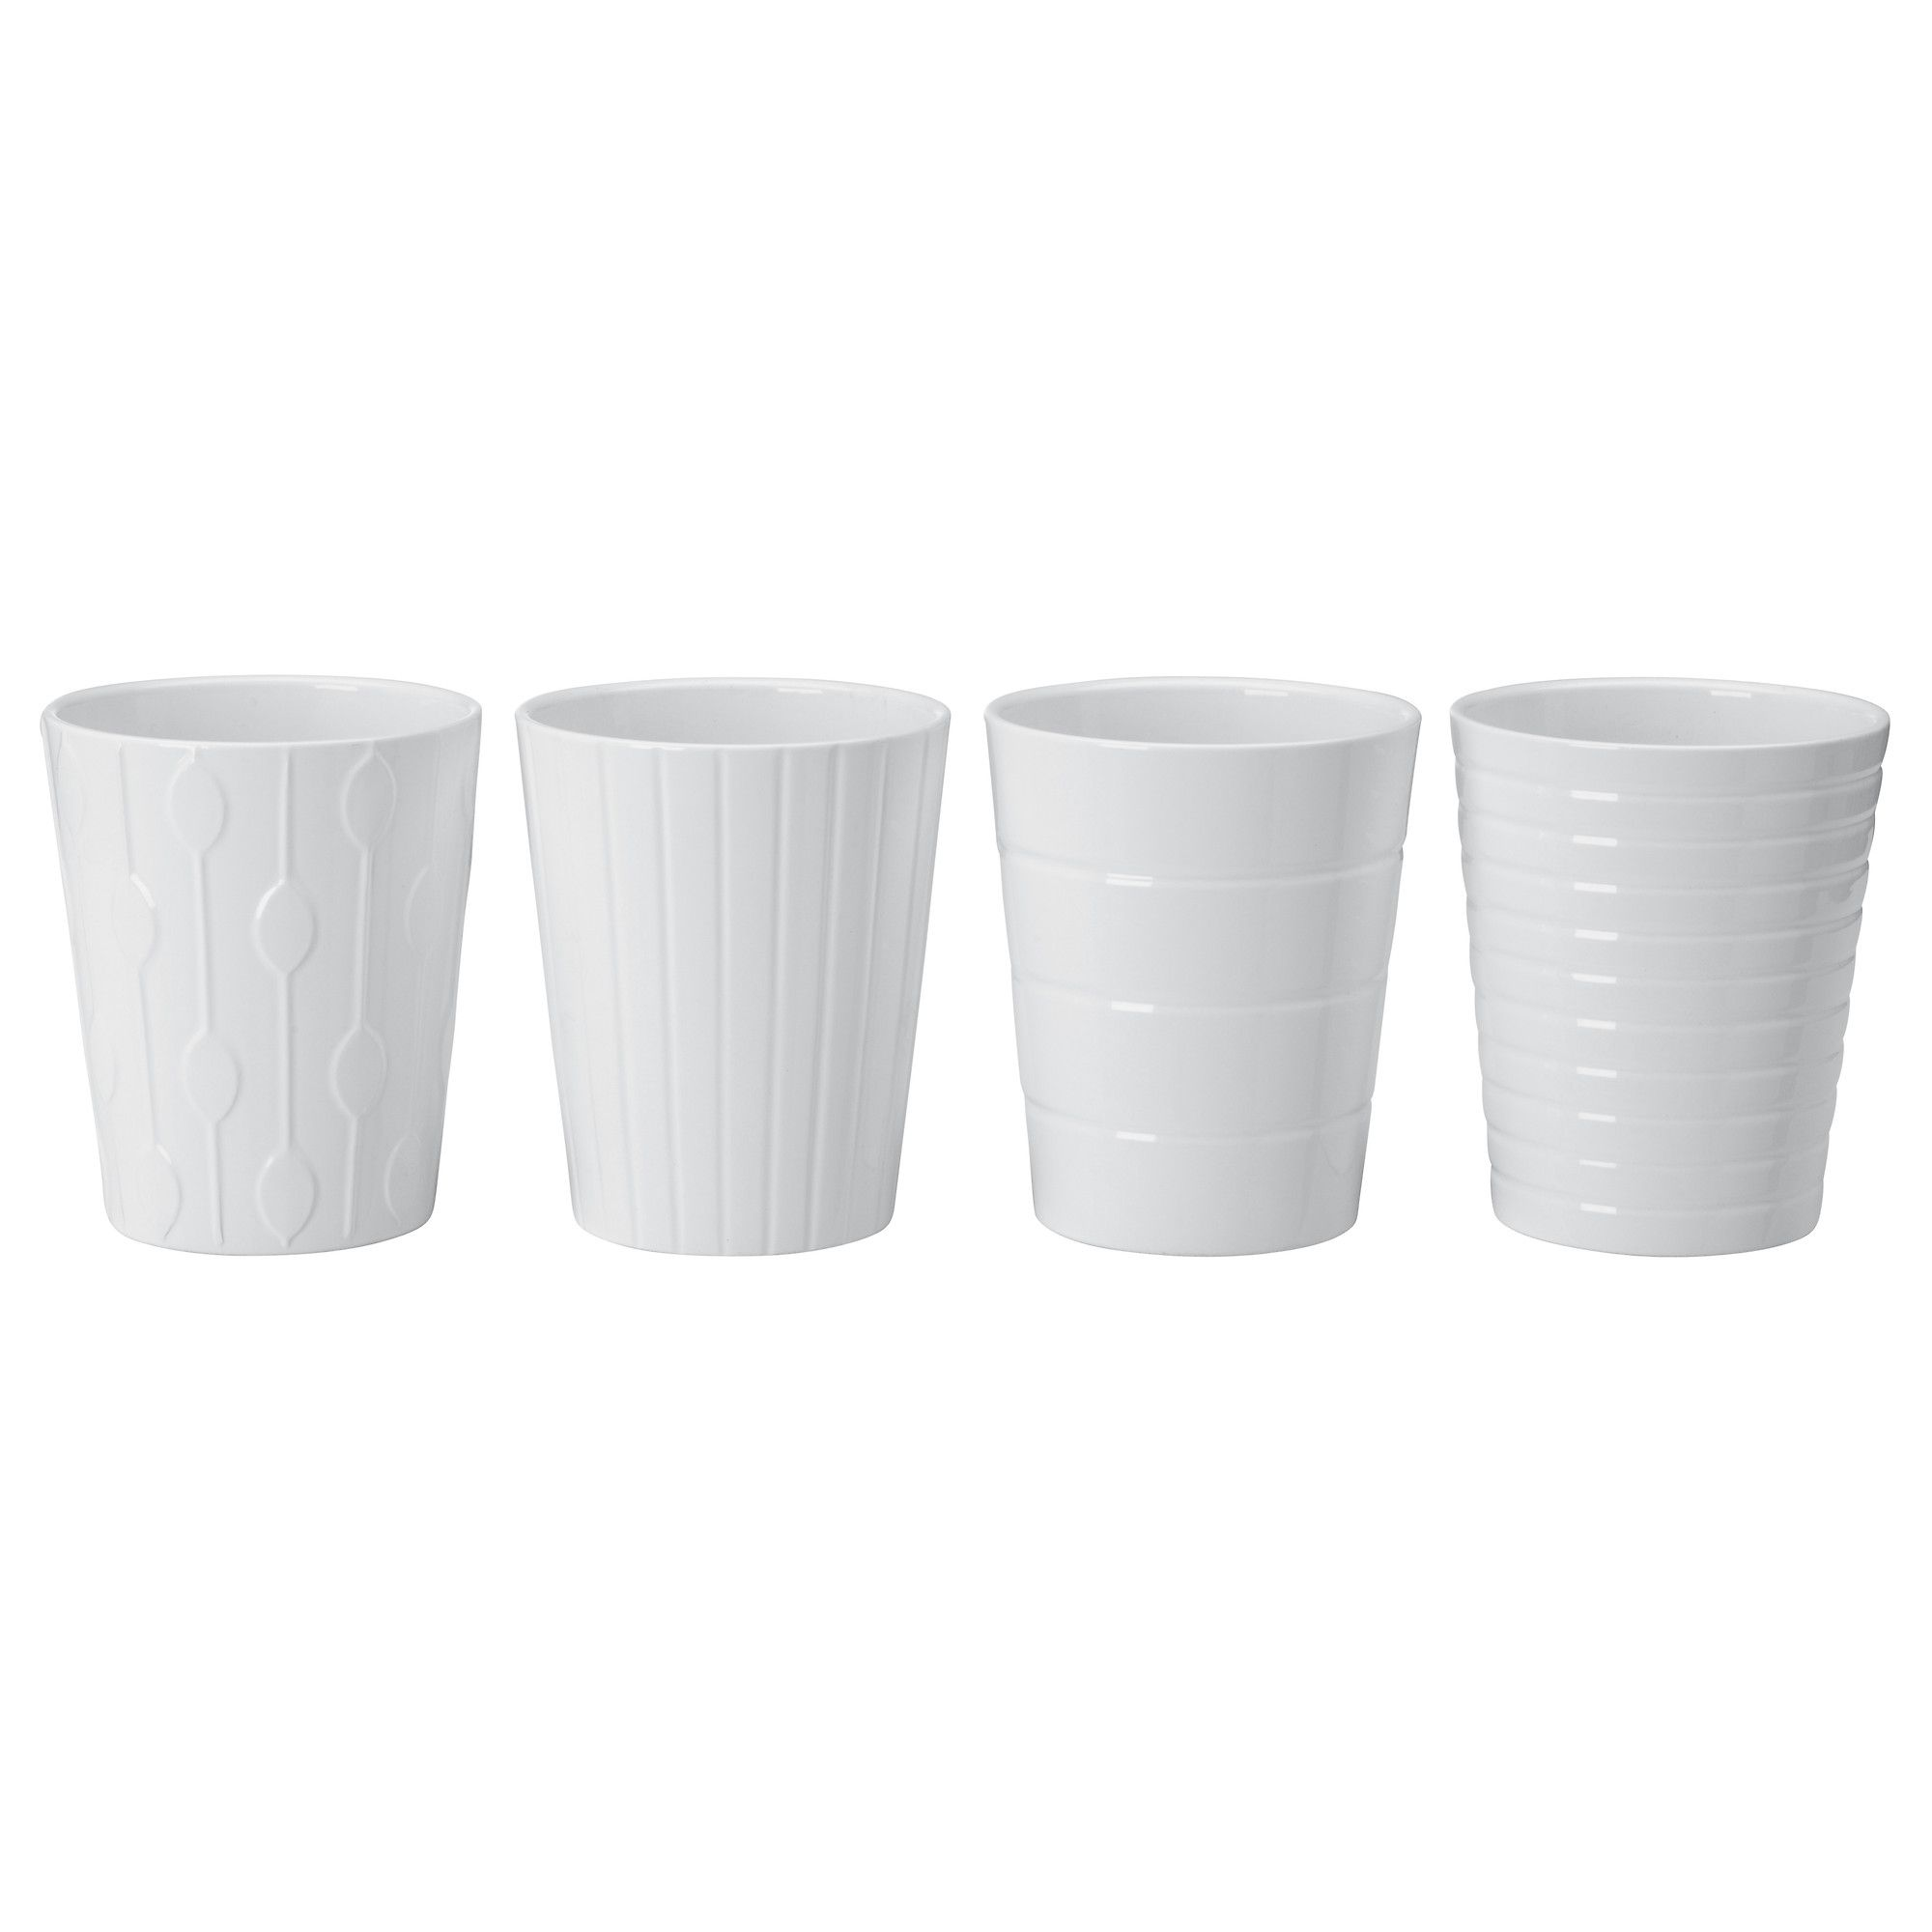 Ikea Planters Large Kardemumma Plant Pot White Assorted Patterns Ikea Ca